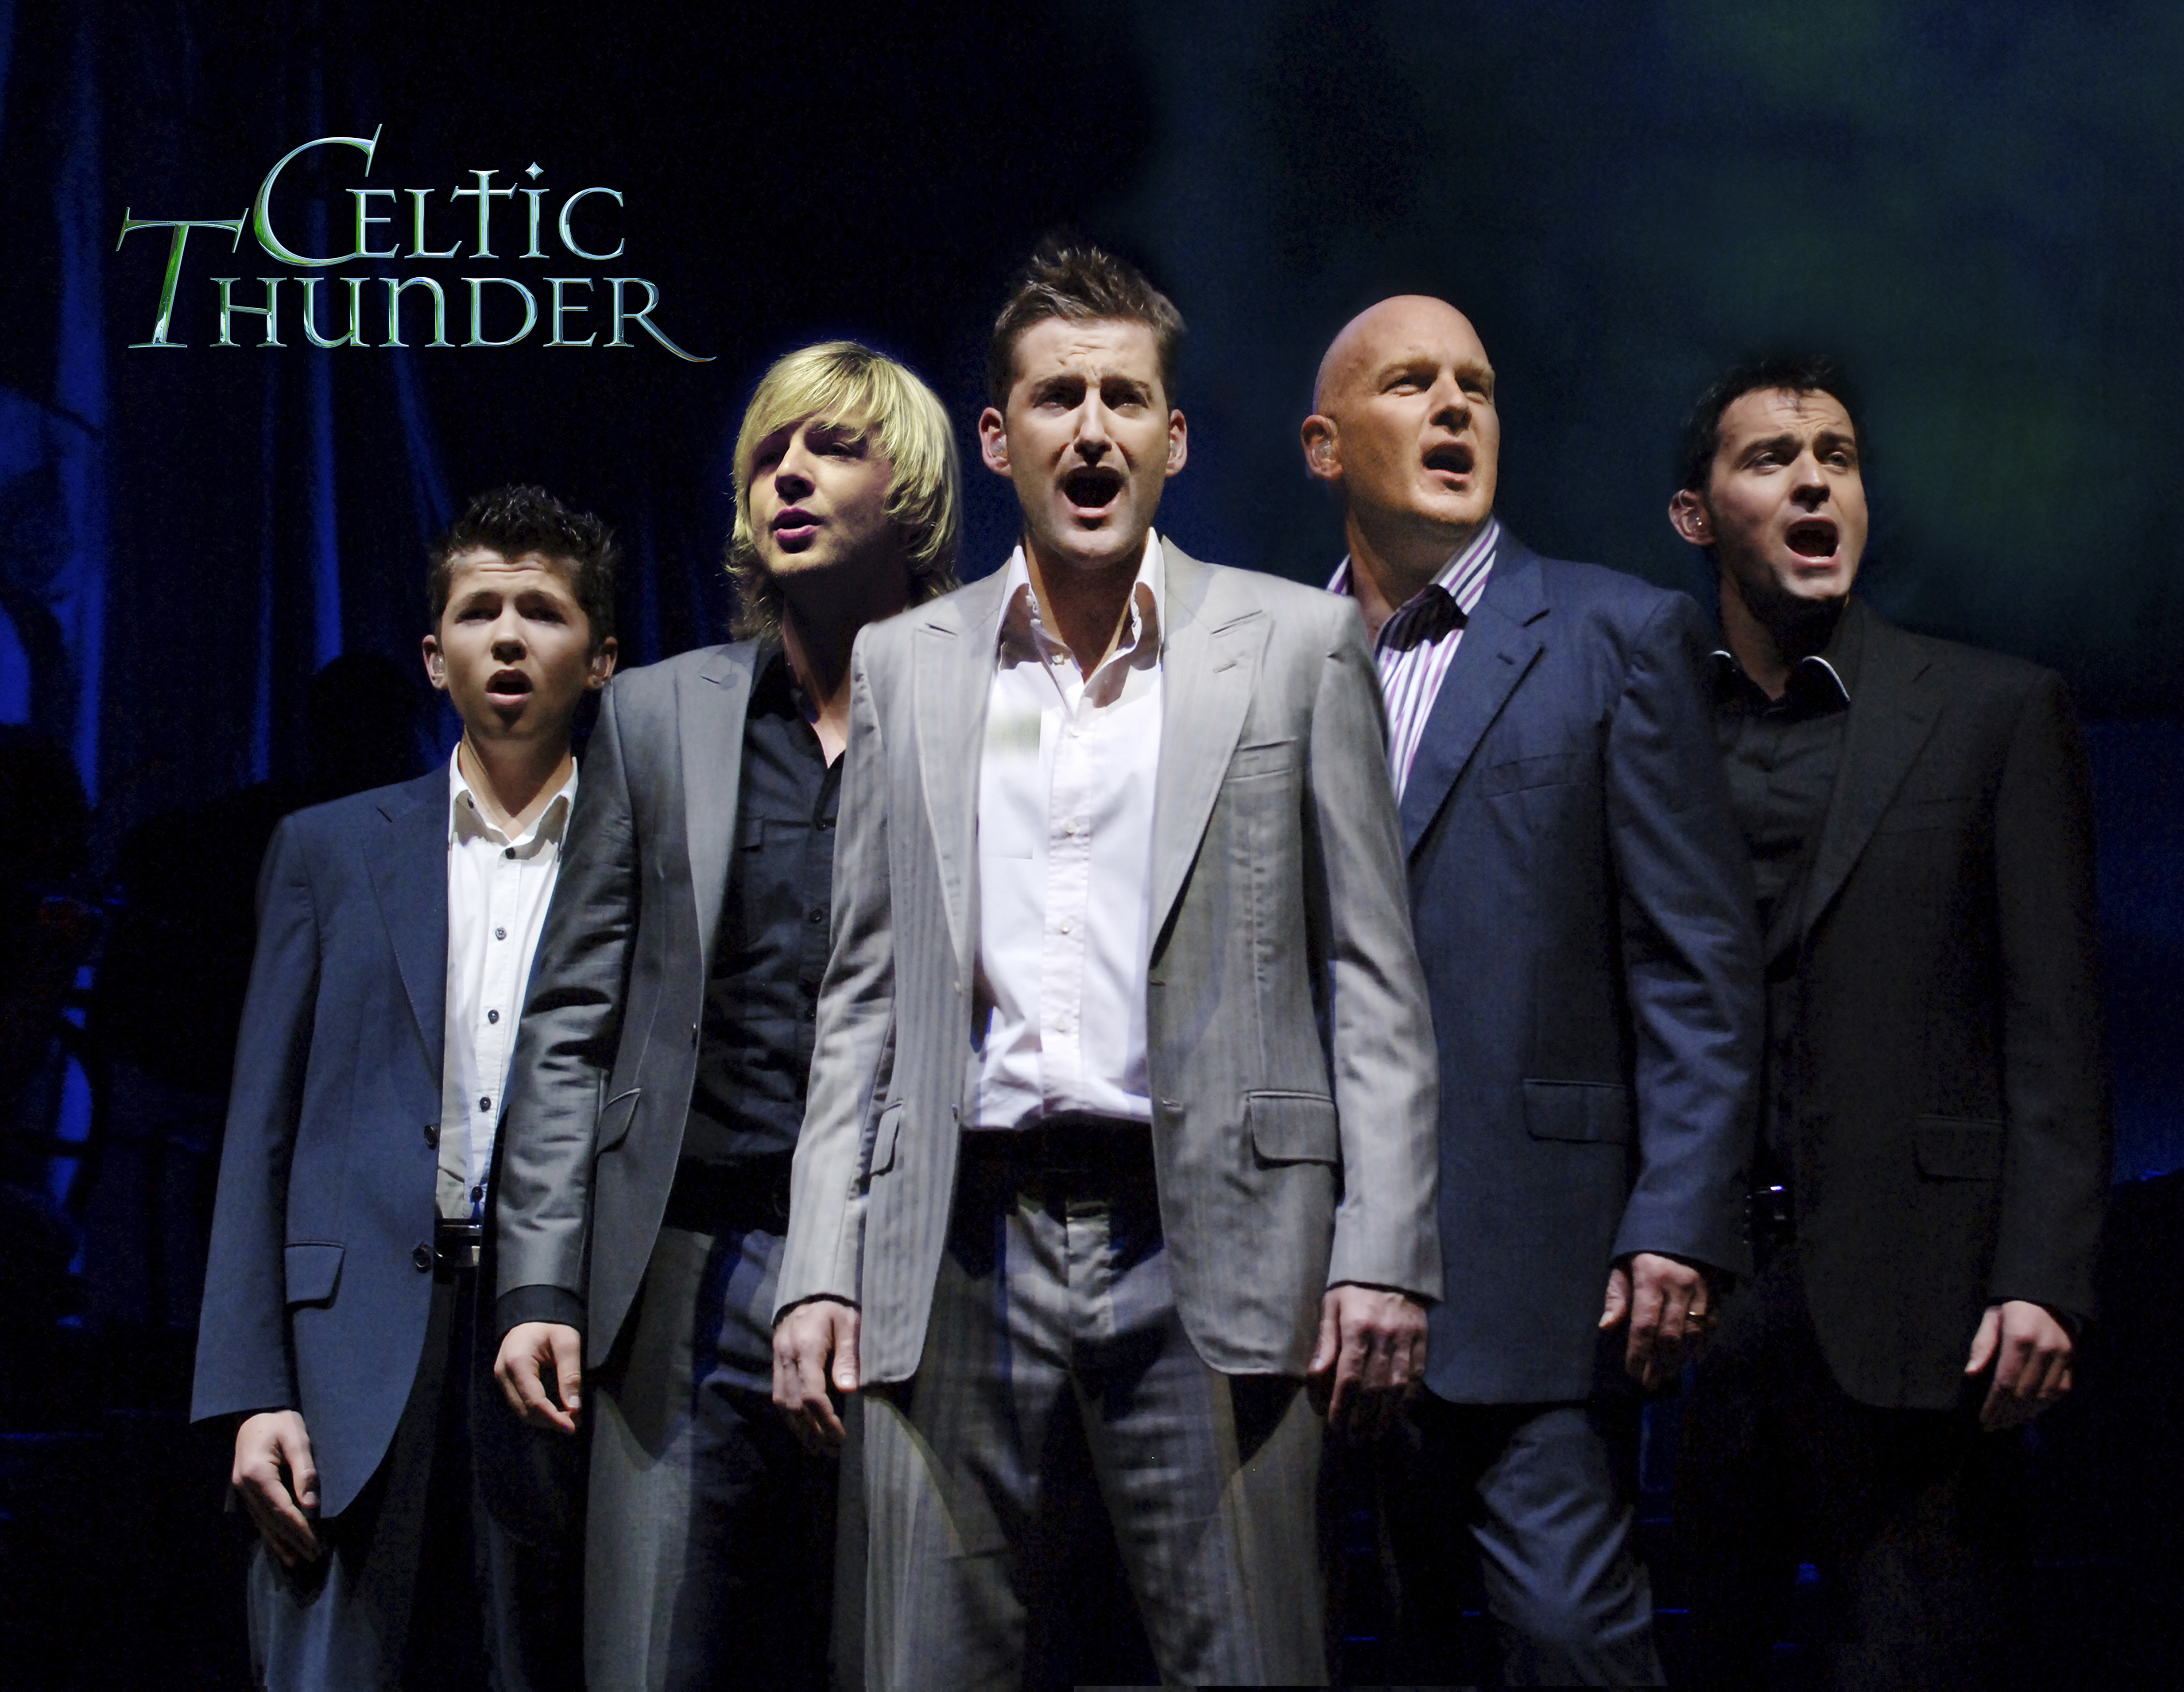 celtic thunder take me home wliw21 pressroom. Black Bedroom Furniture Sets. Home Design Ideas